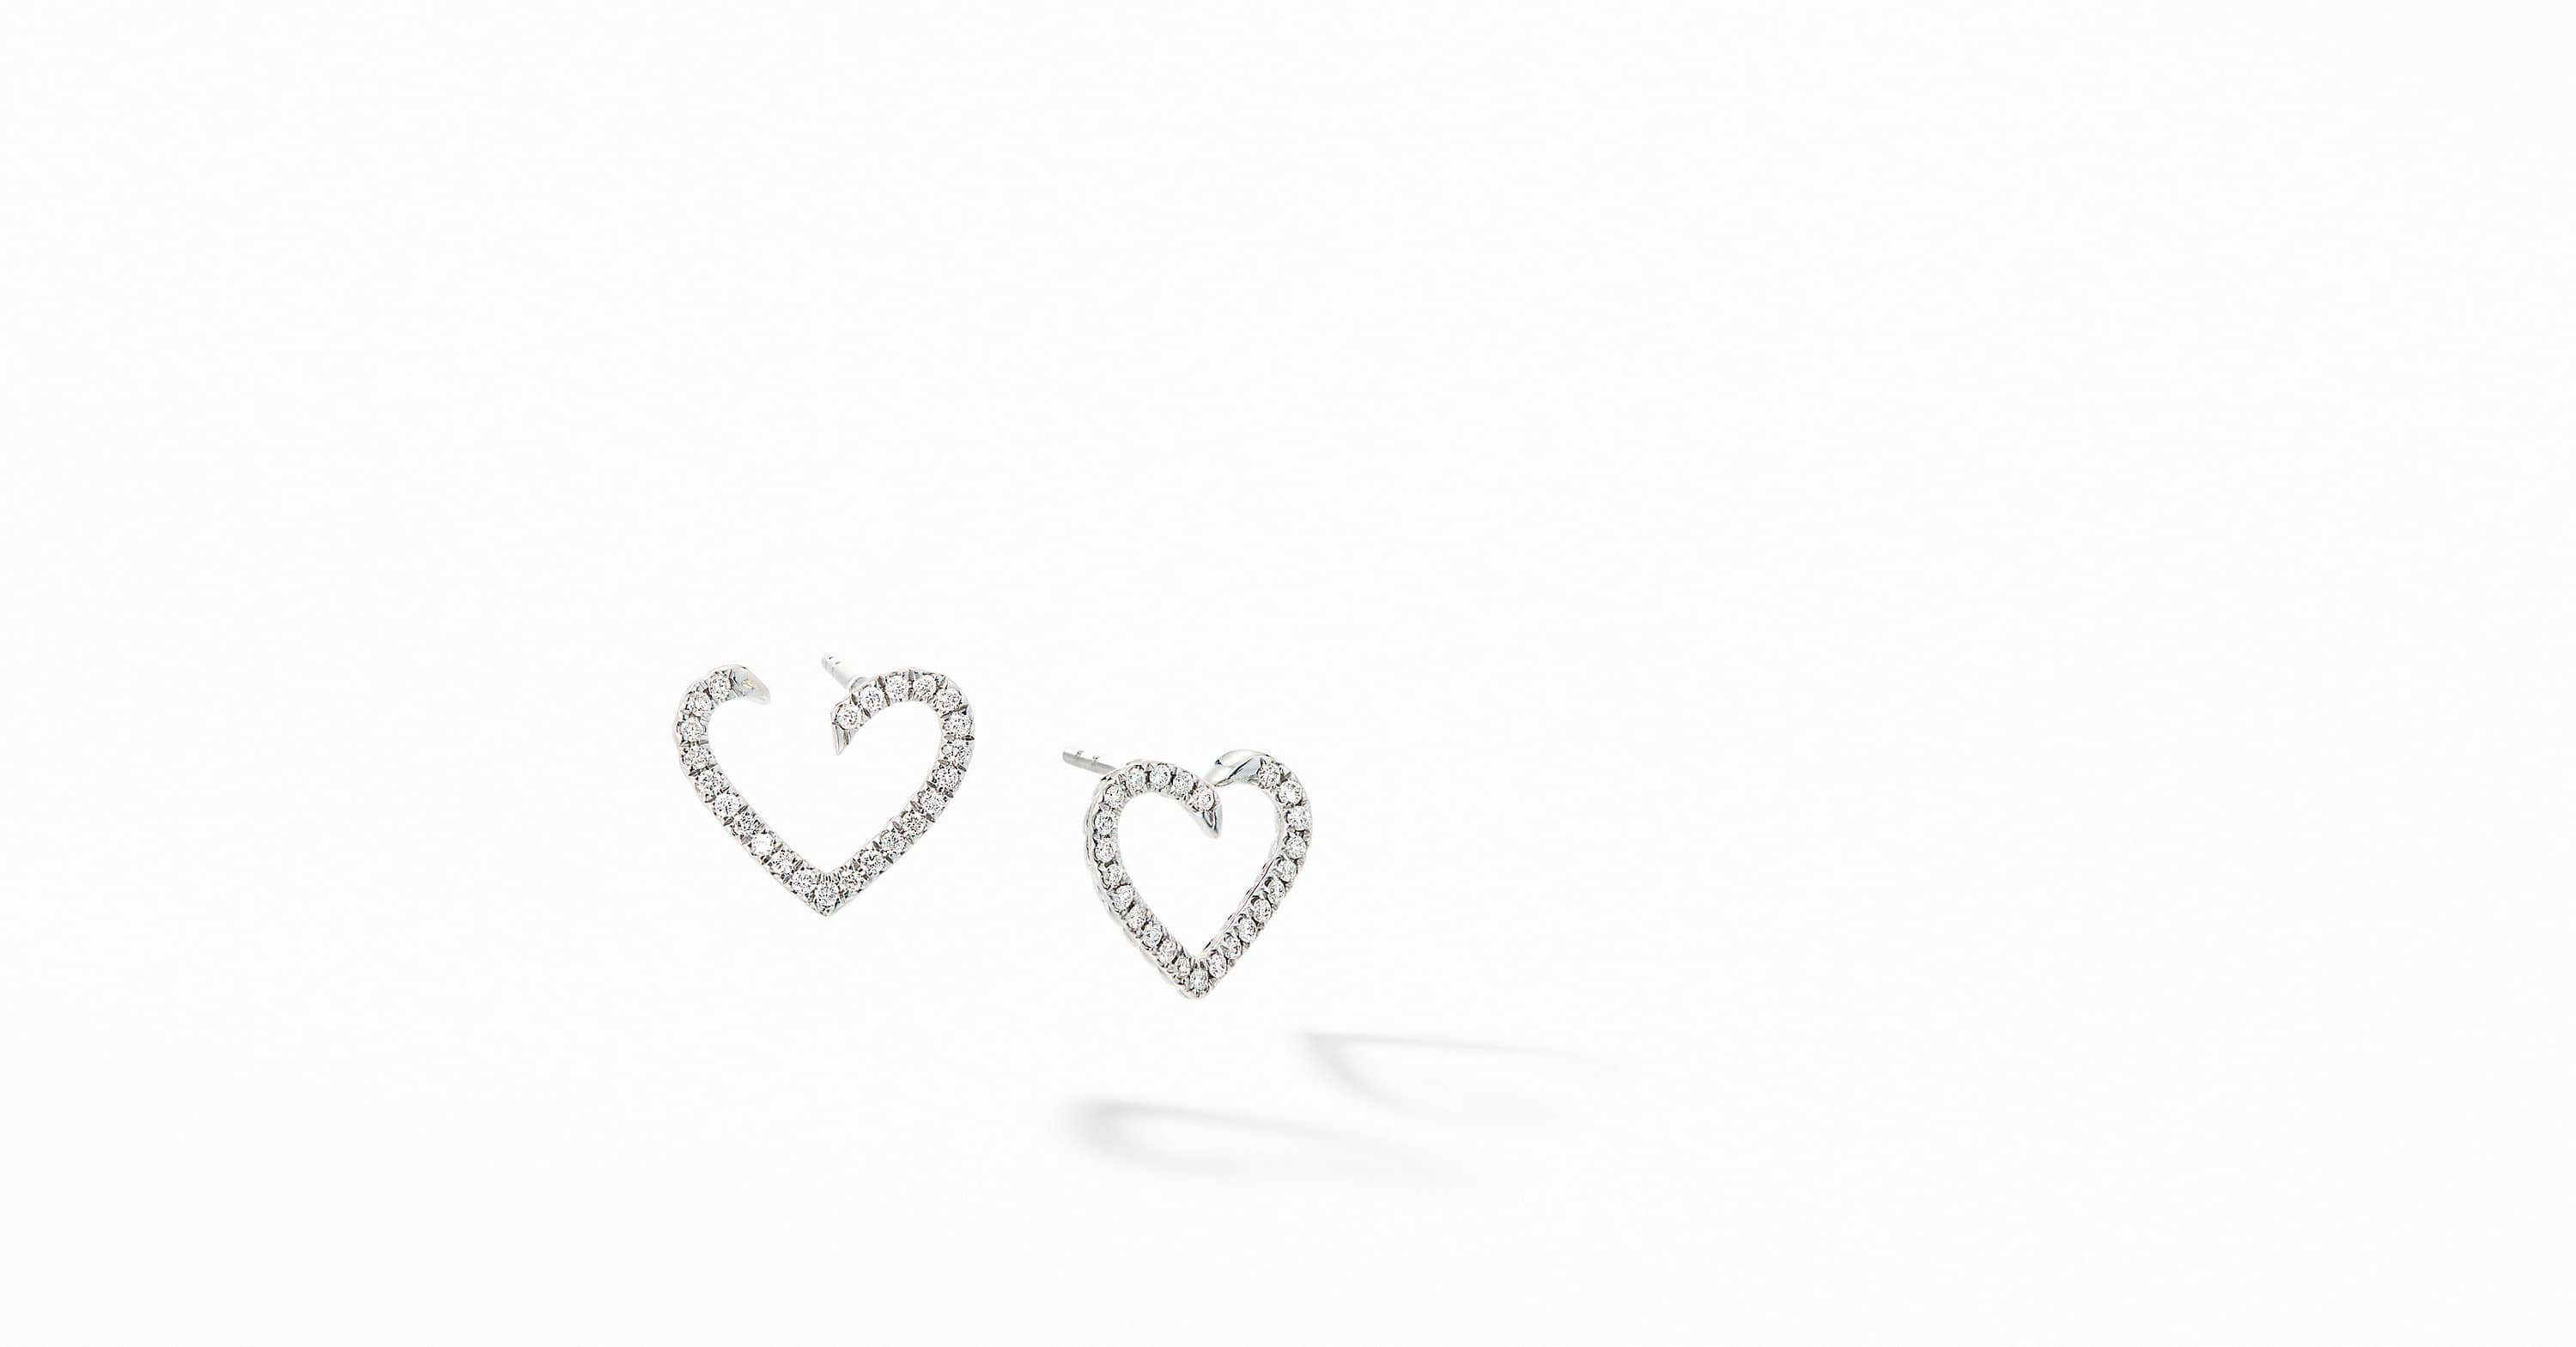 Cable Collectibles Heart Earrings in 18K White Gold with Diamonds